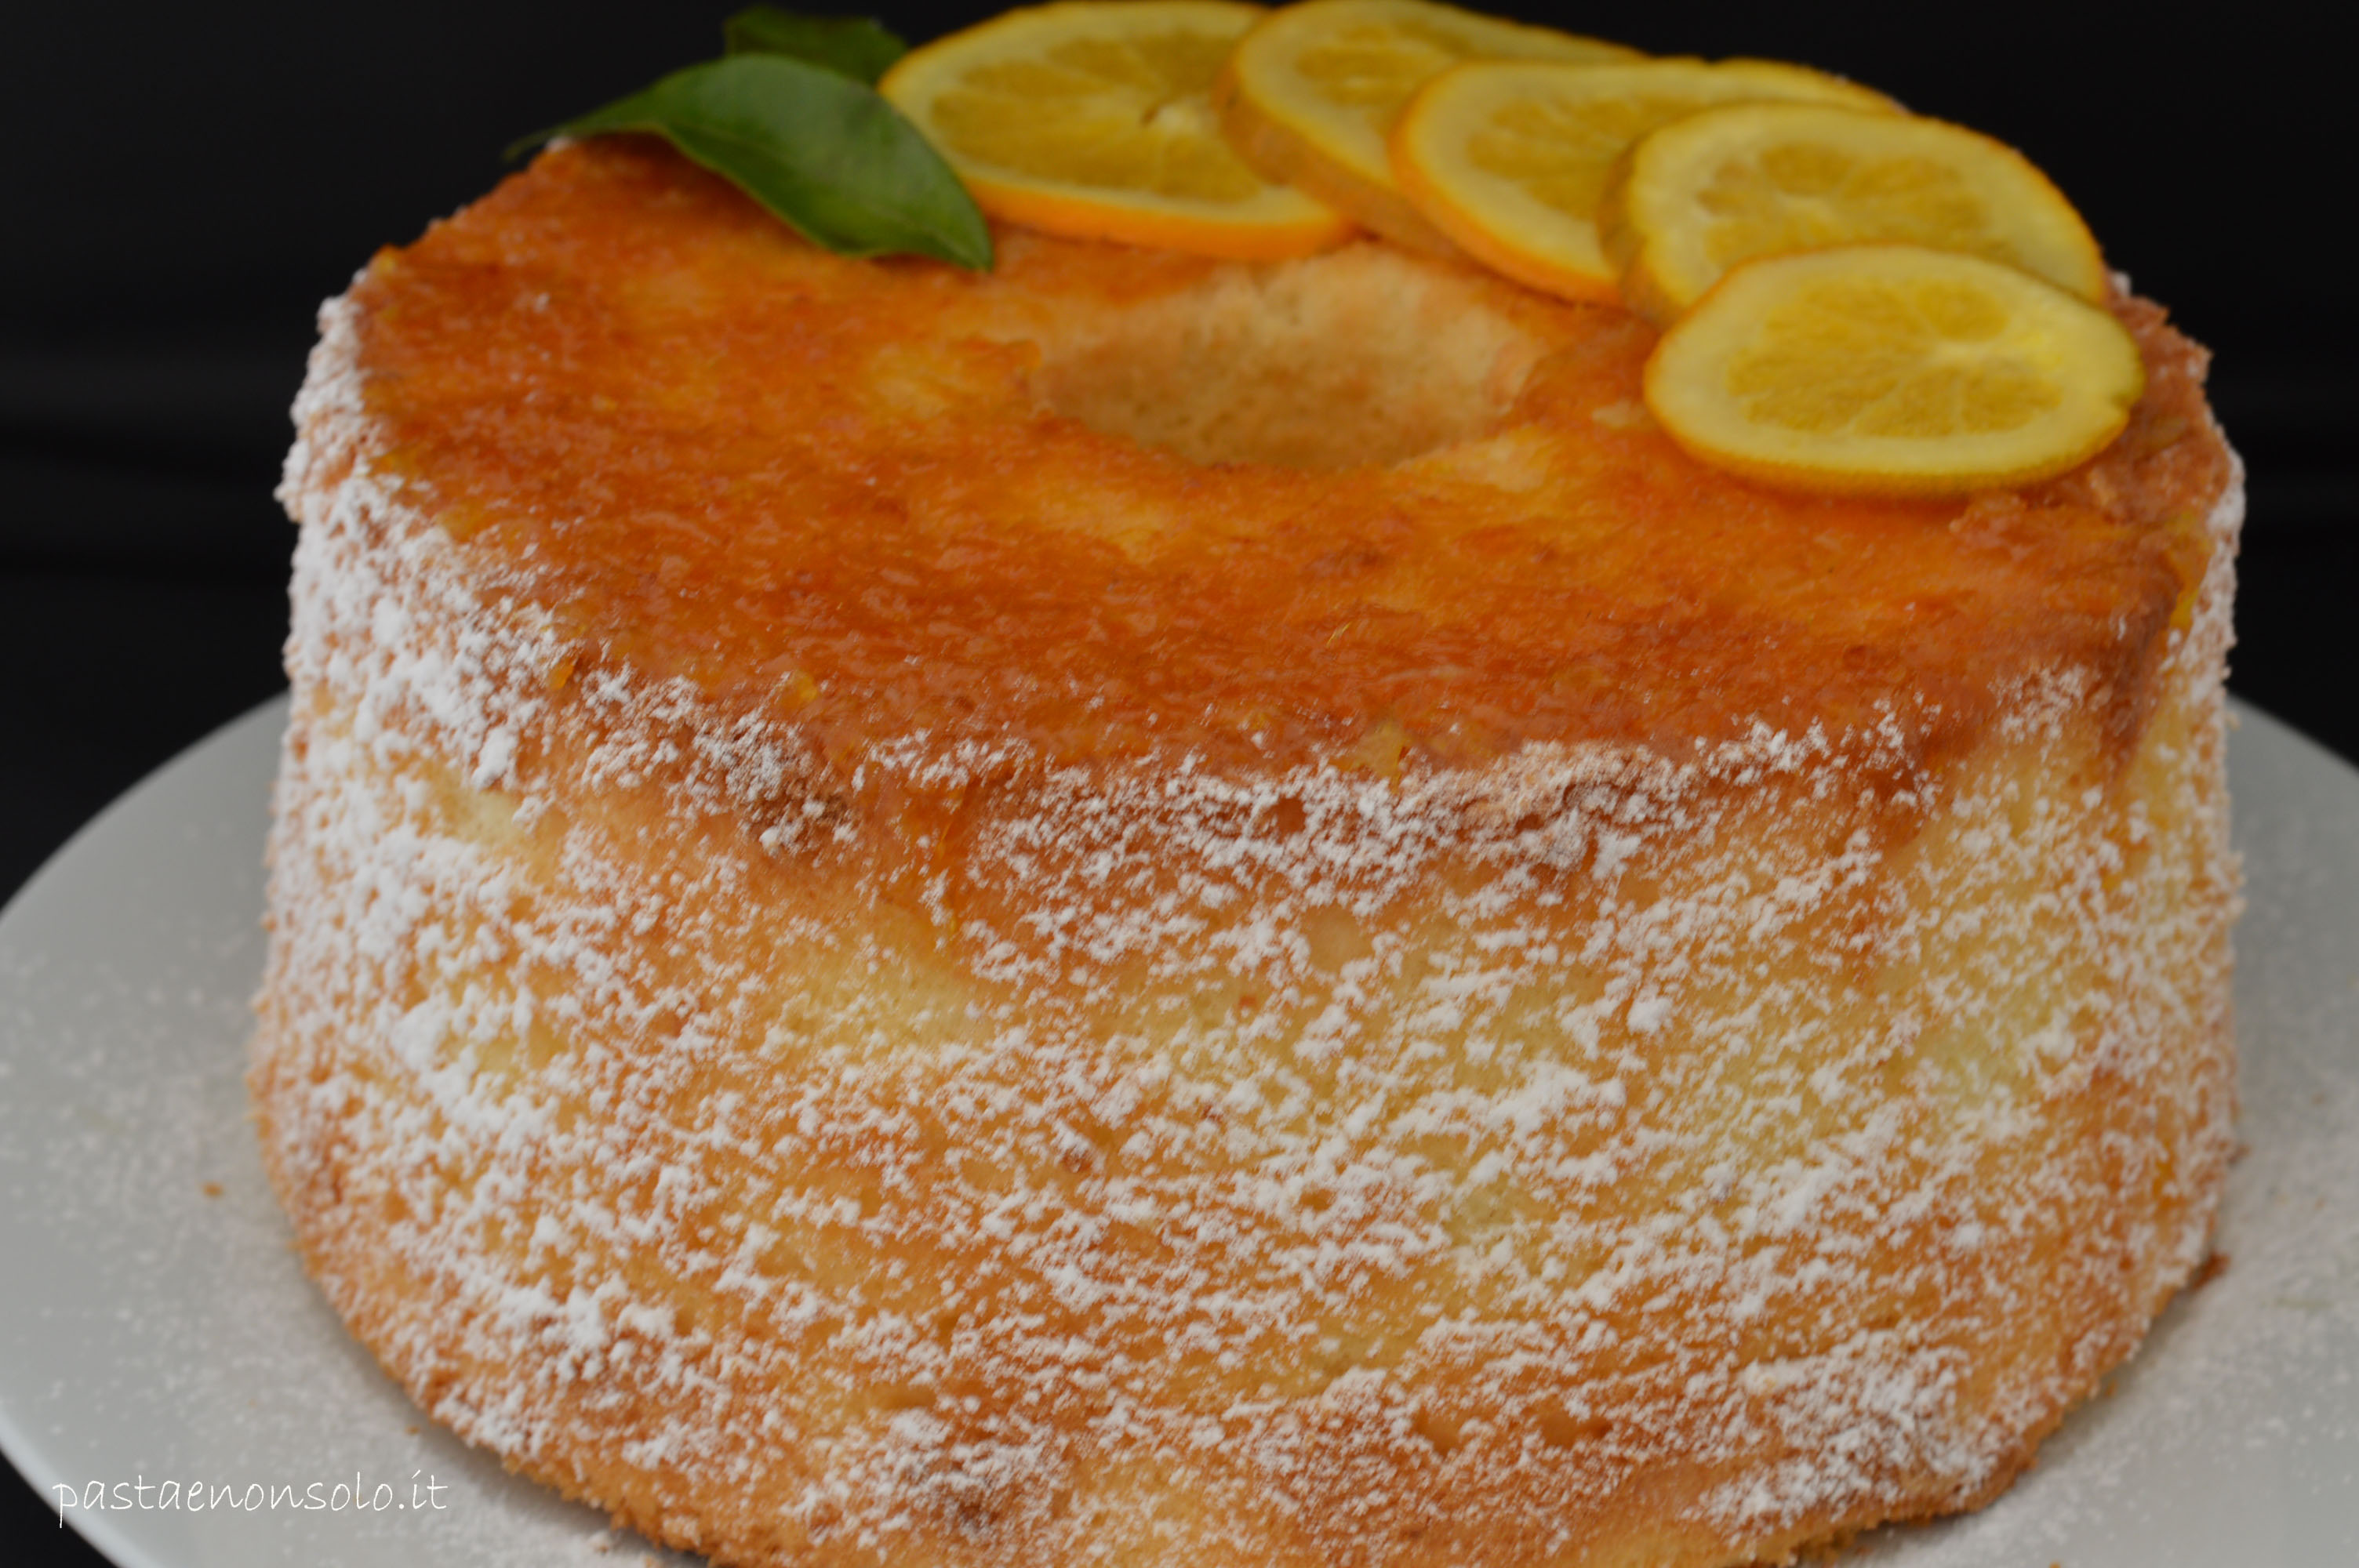 How To Decorate A Chiffon Cake